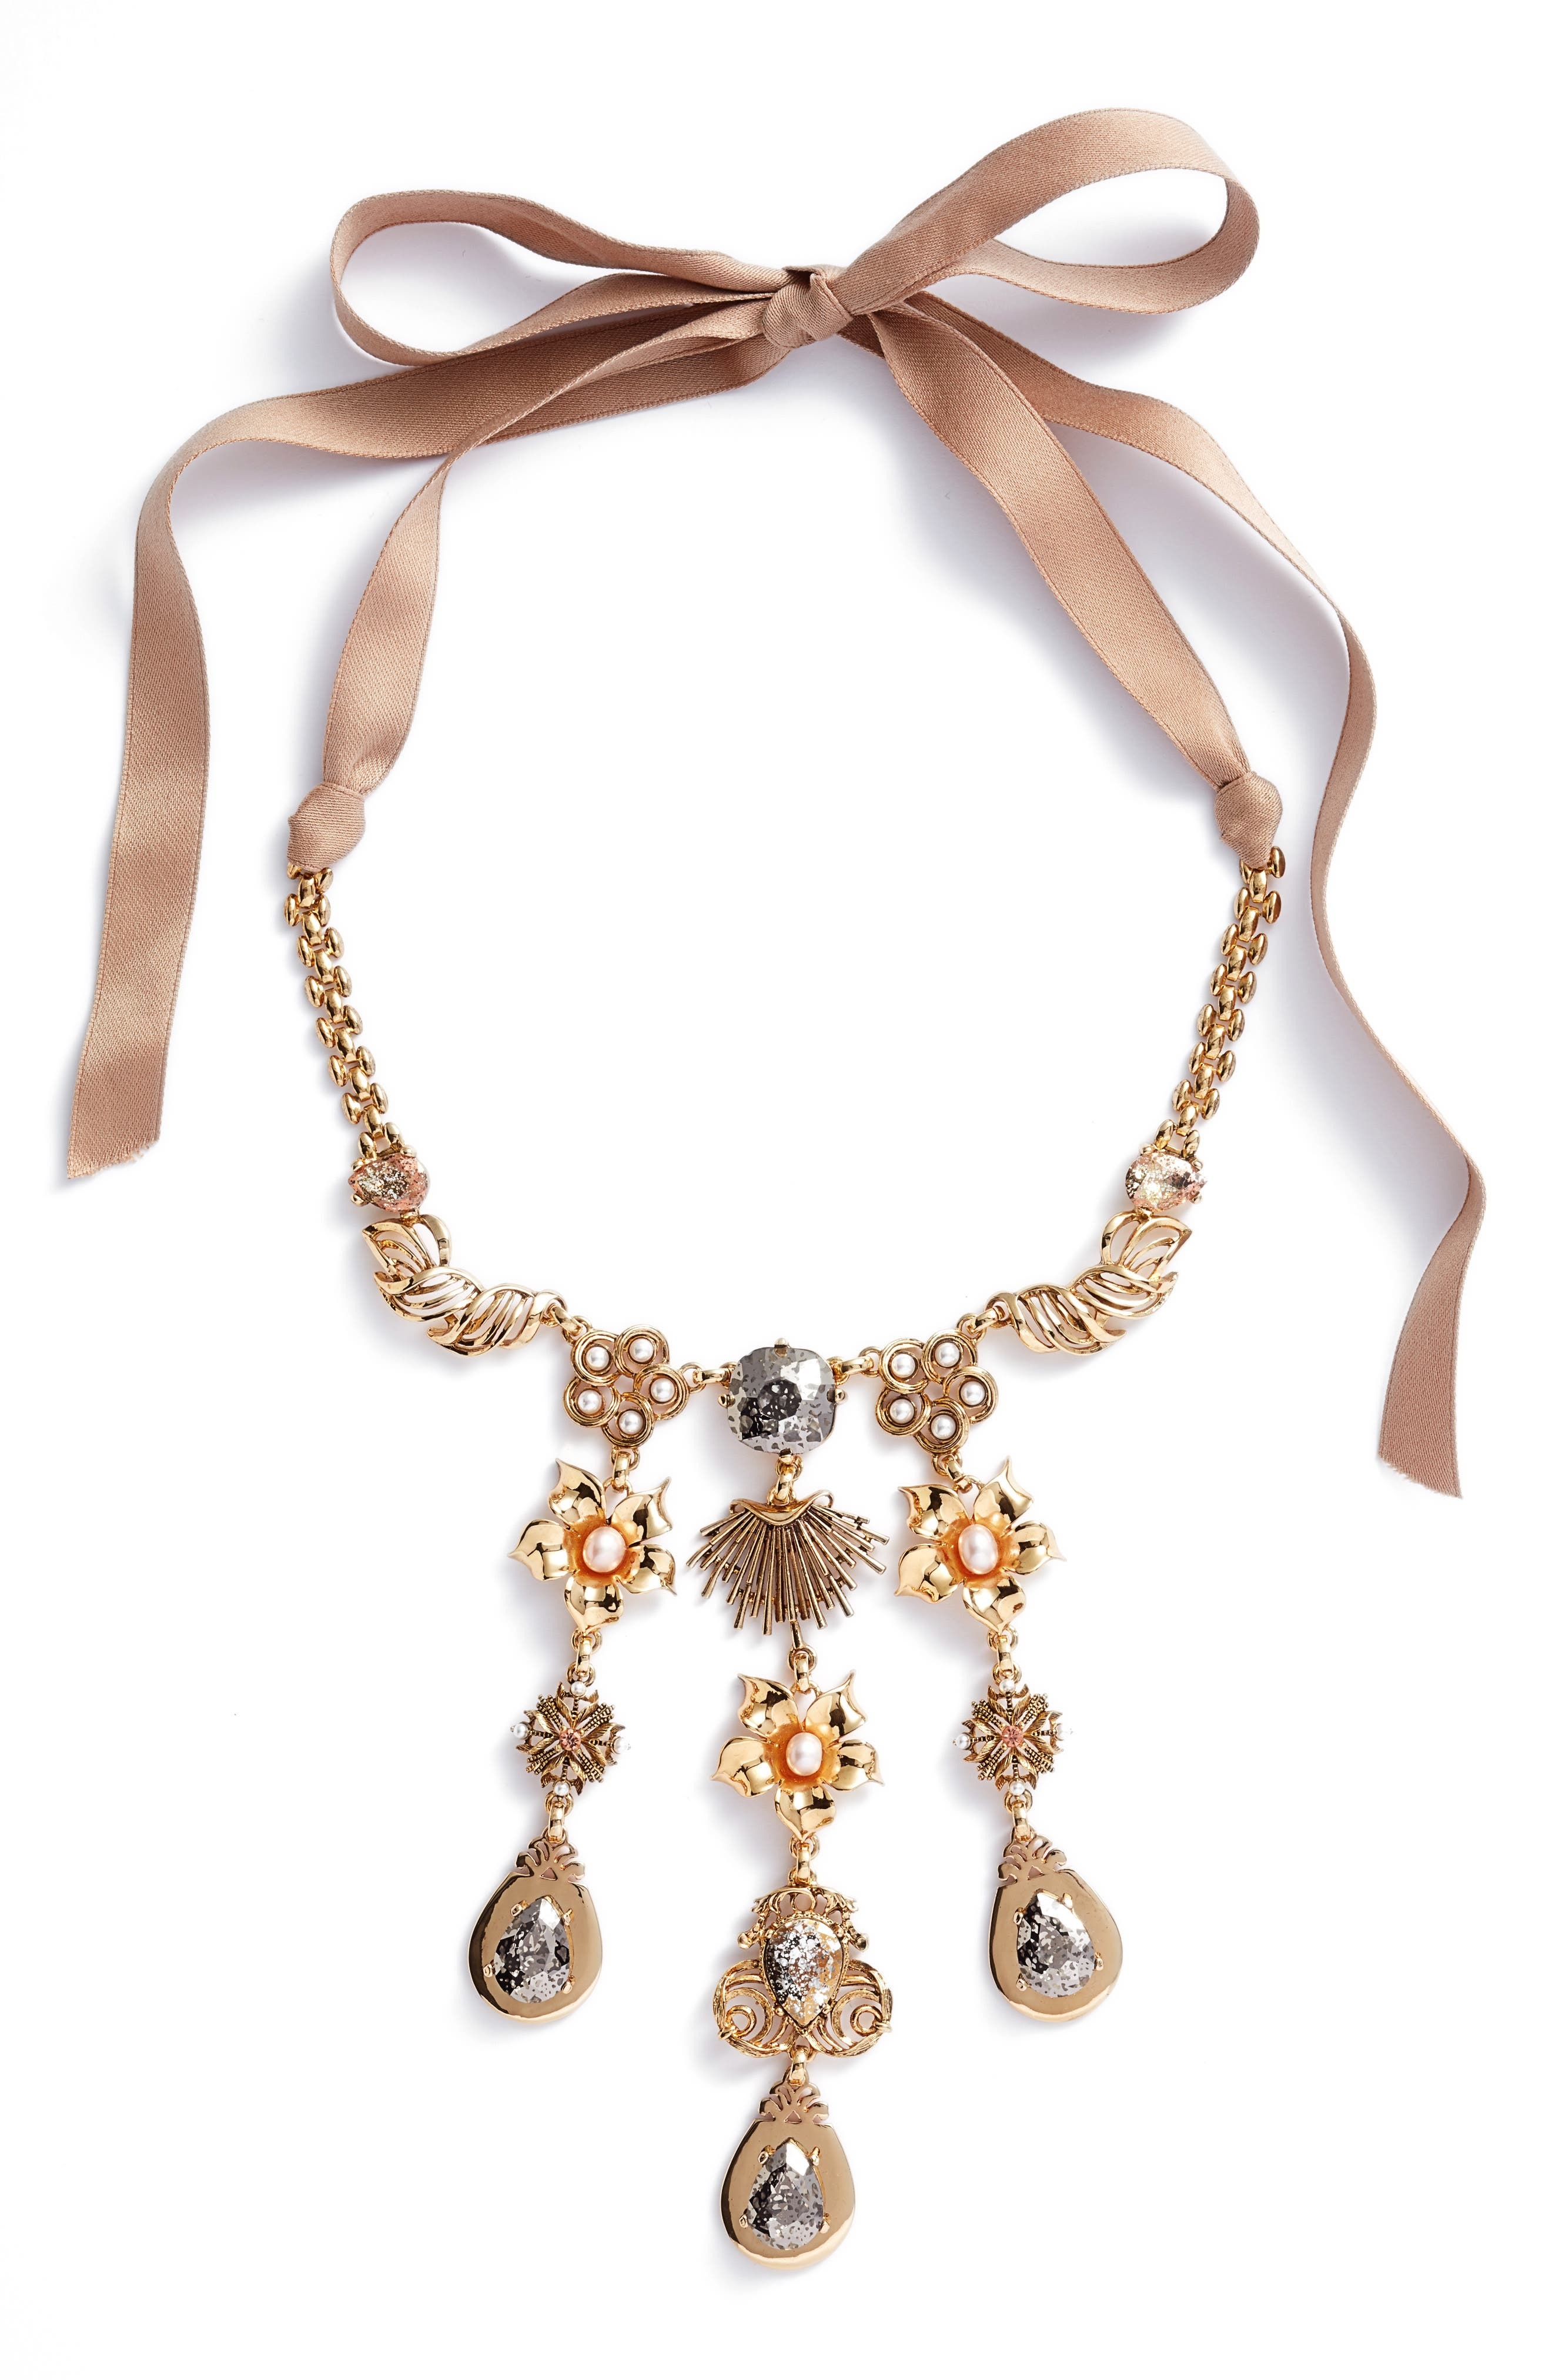 Alternate Image 1 Selected - Badgley Mischka Crystal & Freshwater Pearl Collar Necklace